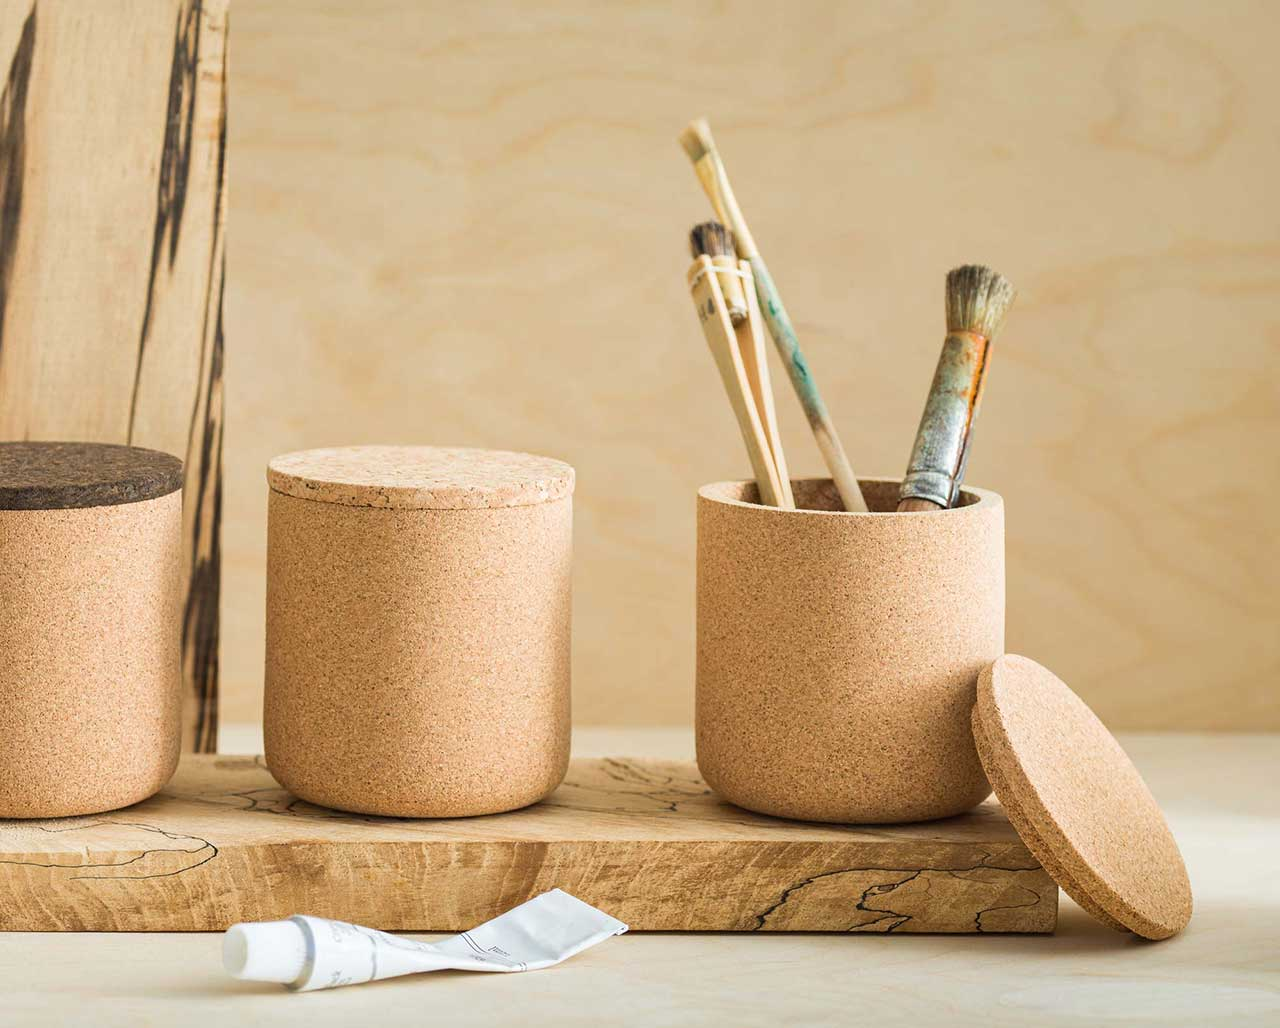 Cork: The Underrated Material You Need More of in Your Home